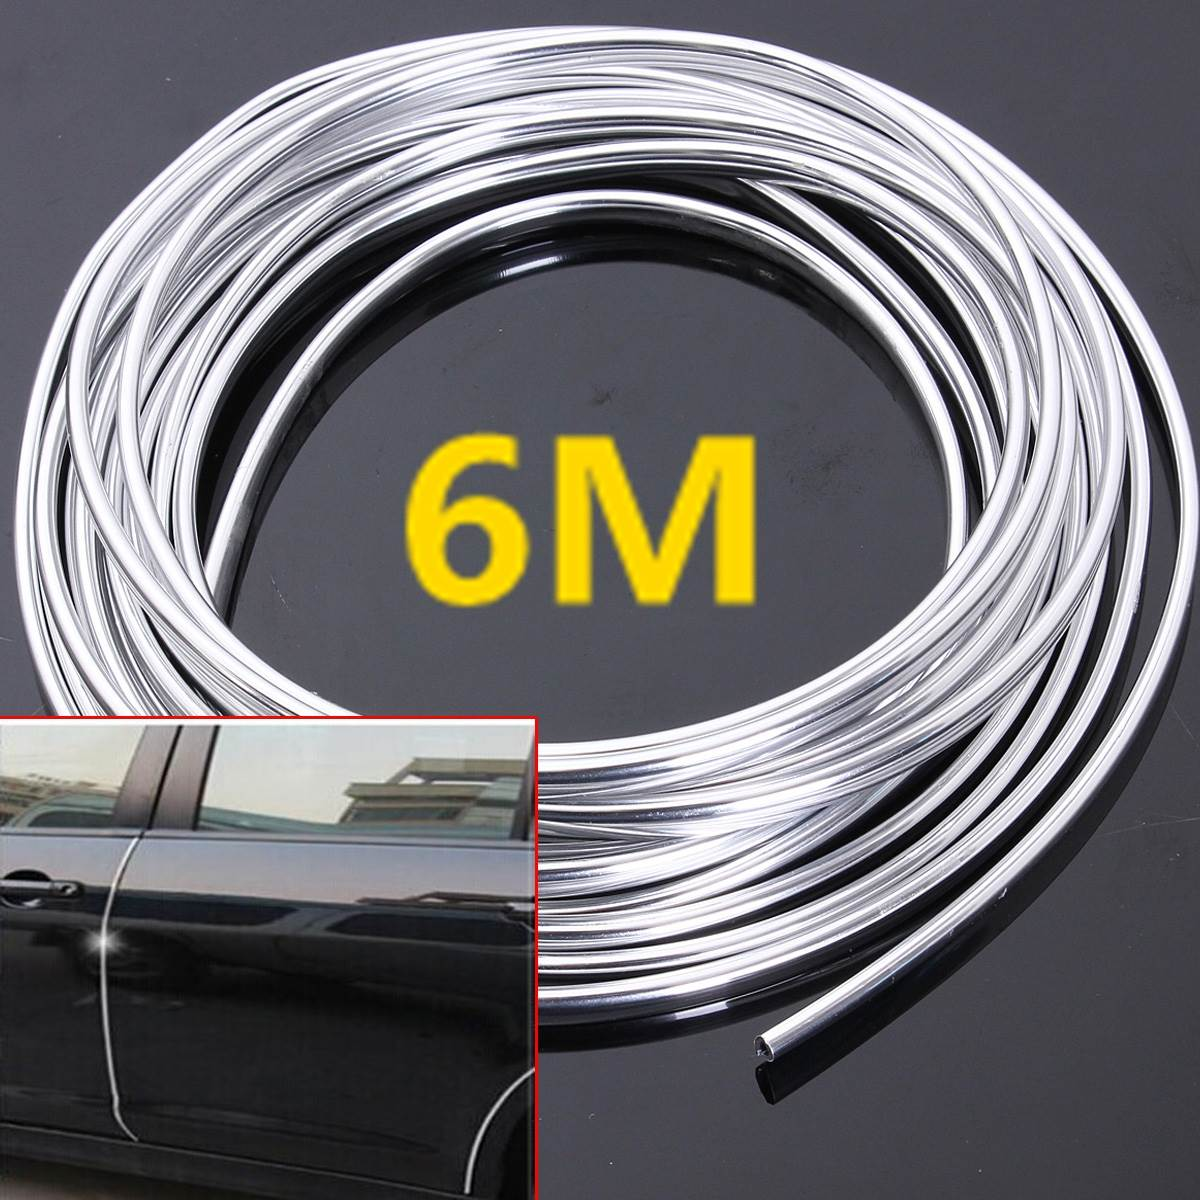 6M Chrome Moulding Trim Strip Car Door Edge Scratch Guard Protector Cover Strip Roll title=